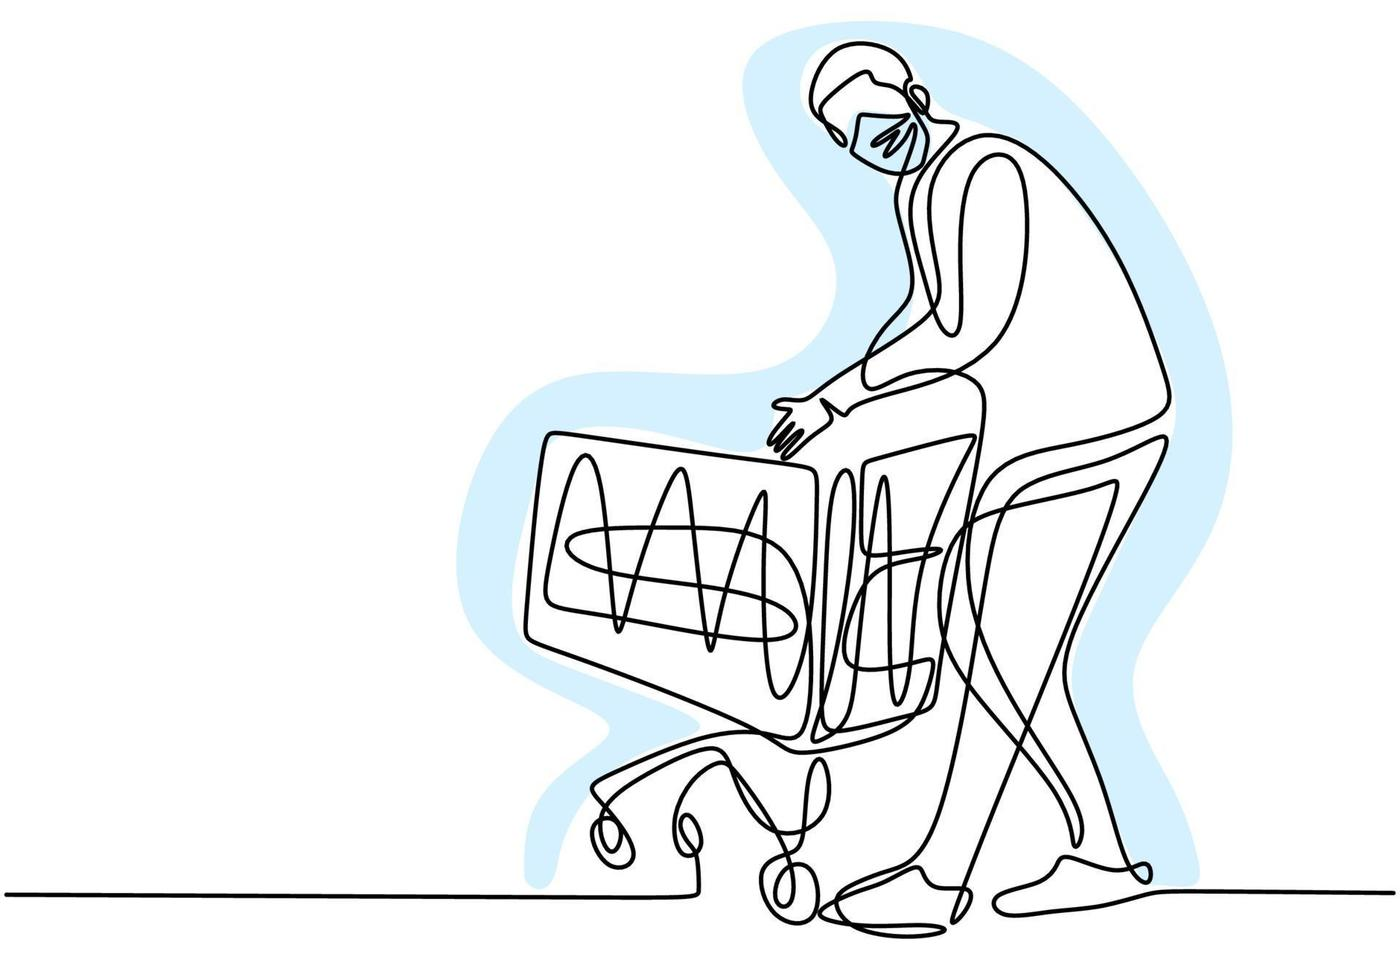 Continuous one line drawing of man holding shopping trolley. Young male standing while buying food in supermarket with protecting face mask so as not to spread COVID19. New normal transition vector